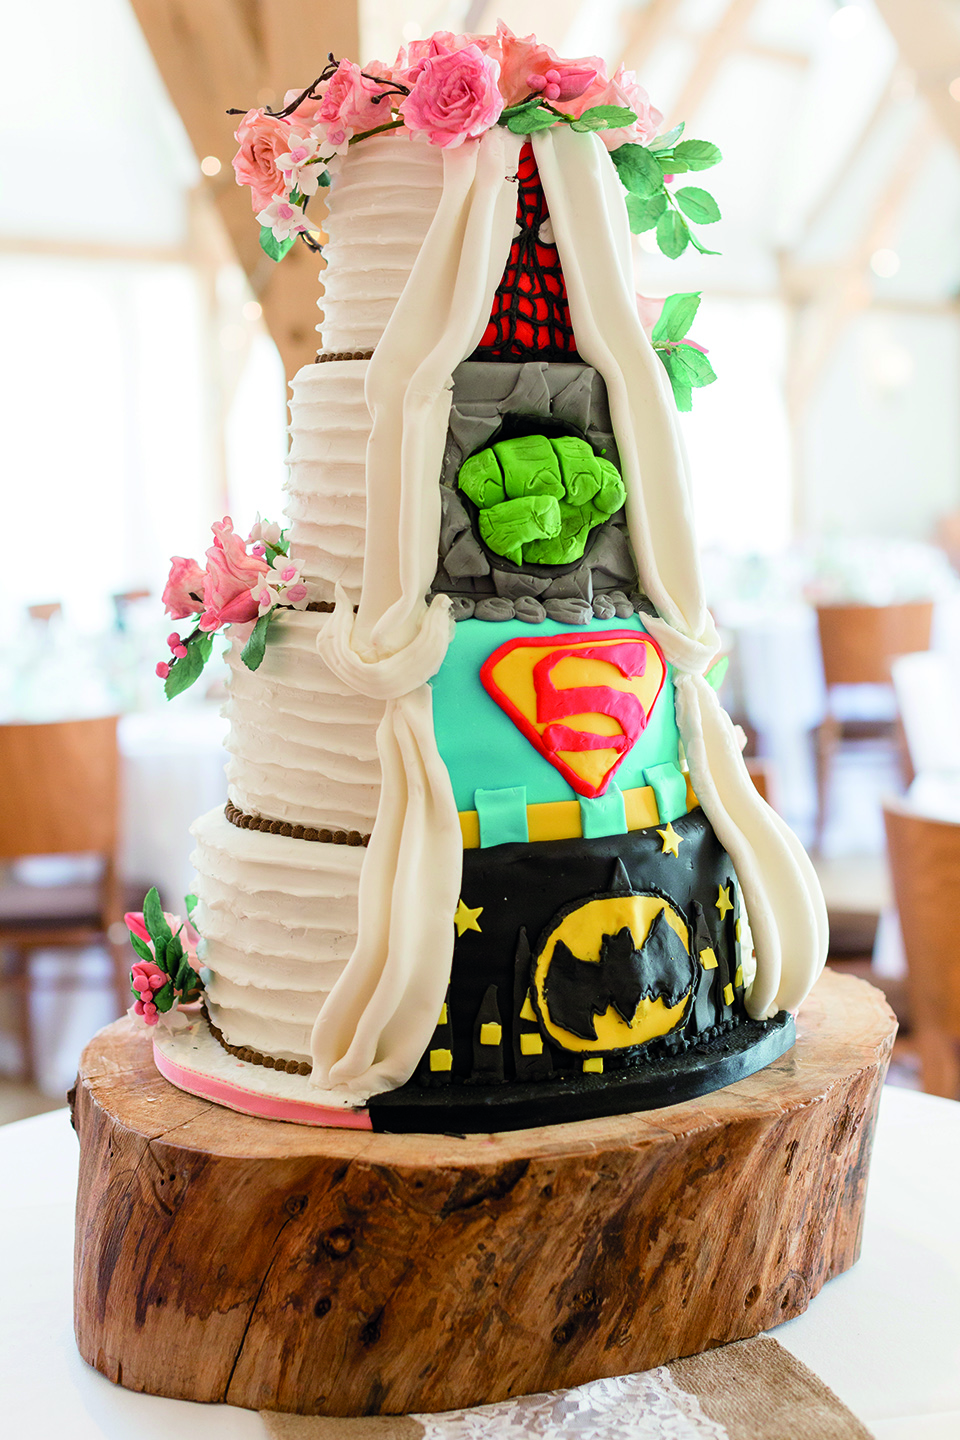 For their summer wedding at Bassmead Manor Barns the couple embraced a superhero themed wedding cake